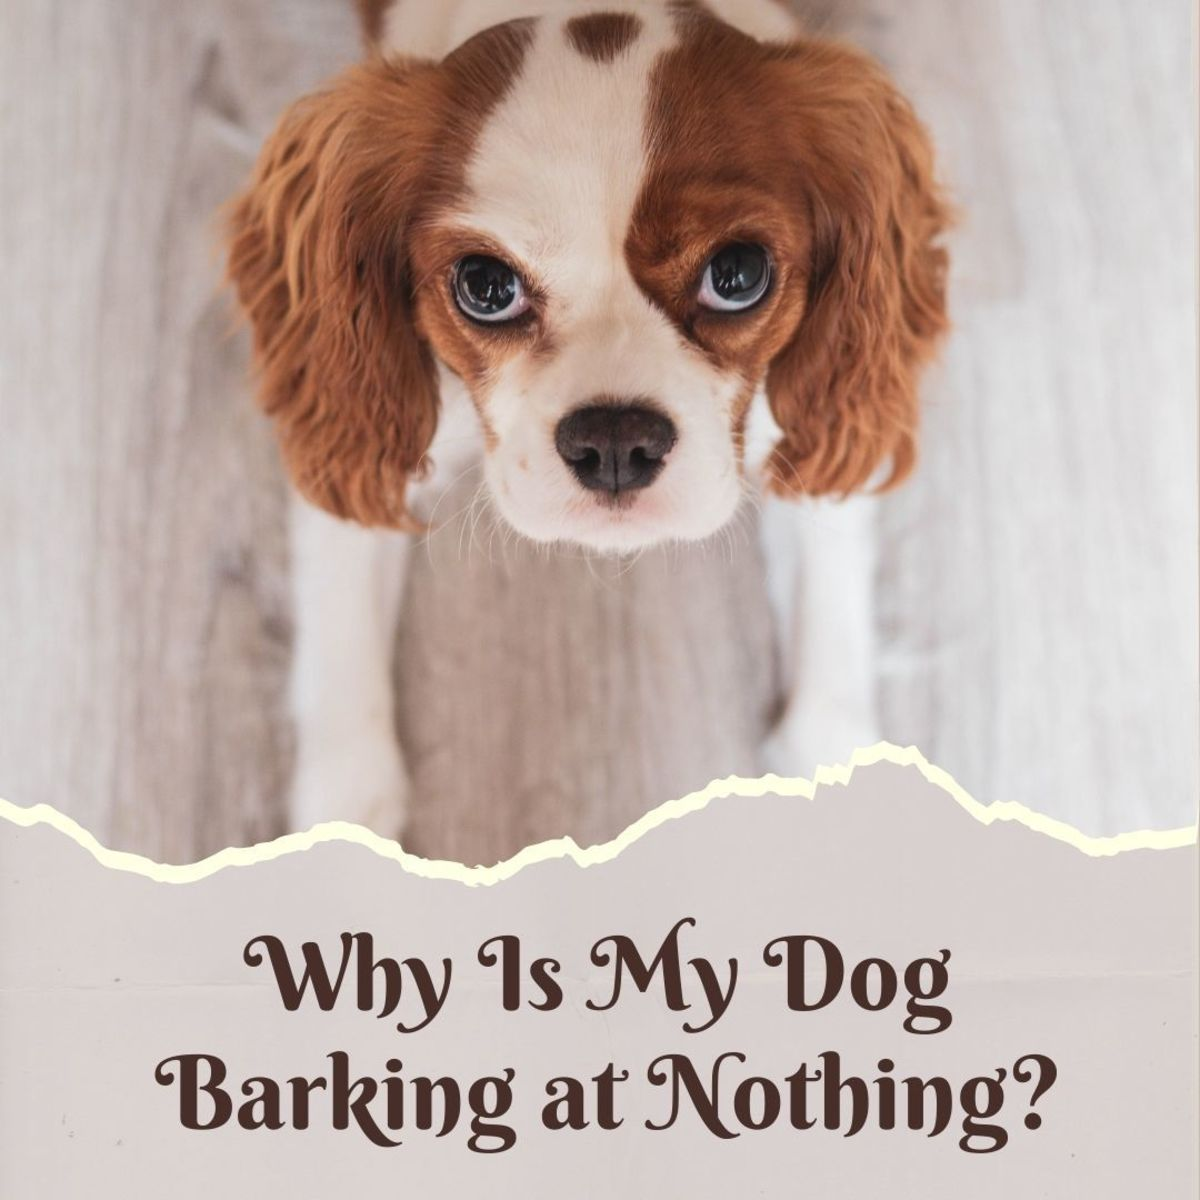 My dog is barking at nothing—why?